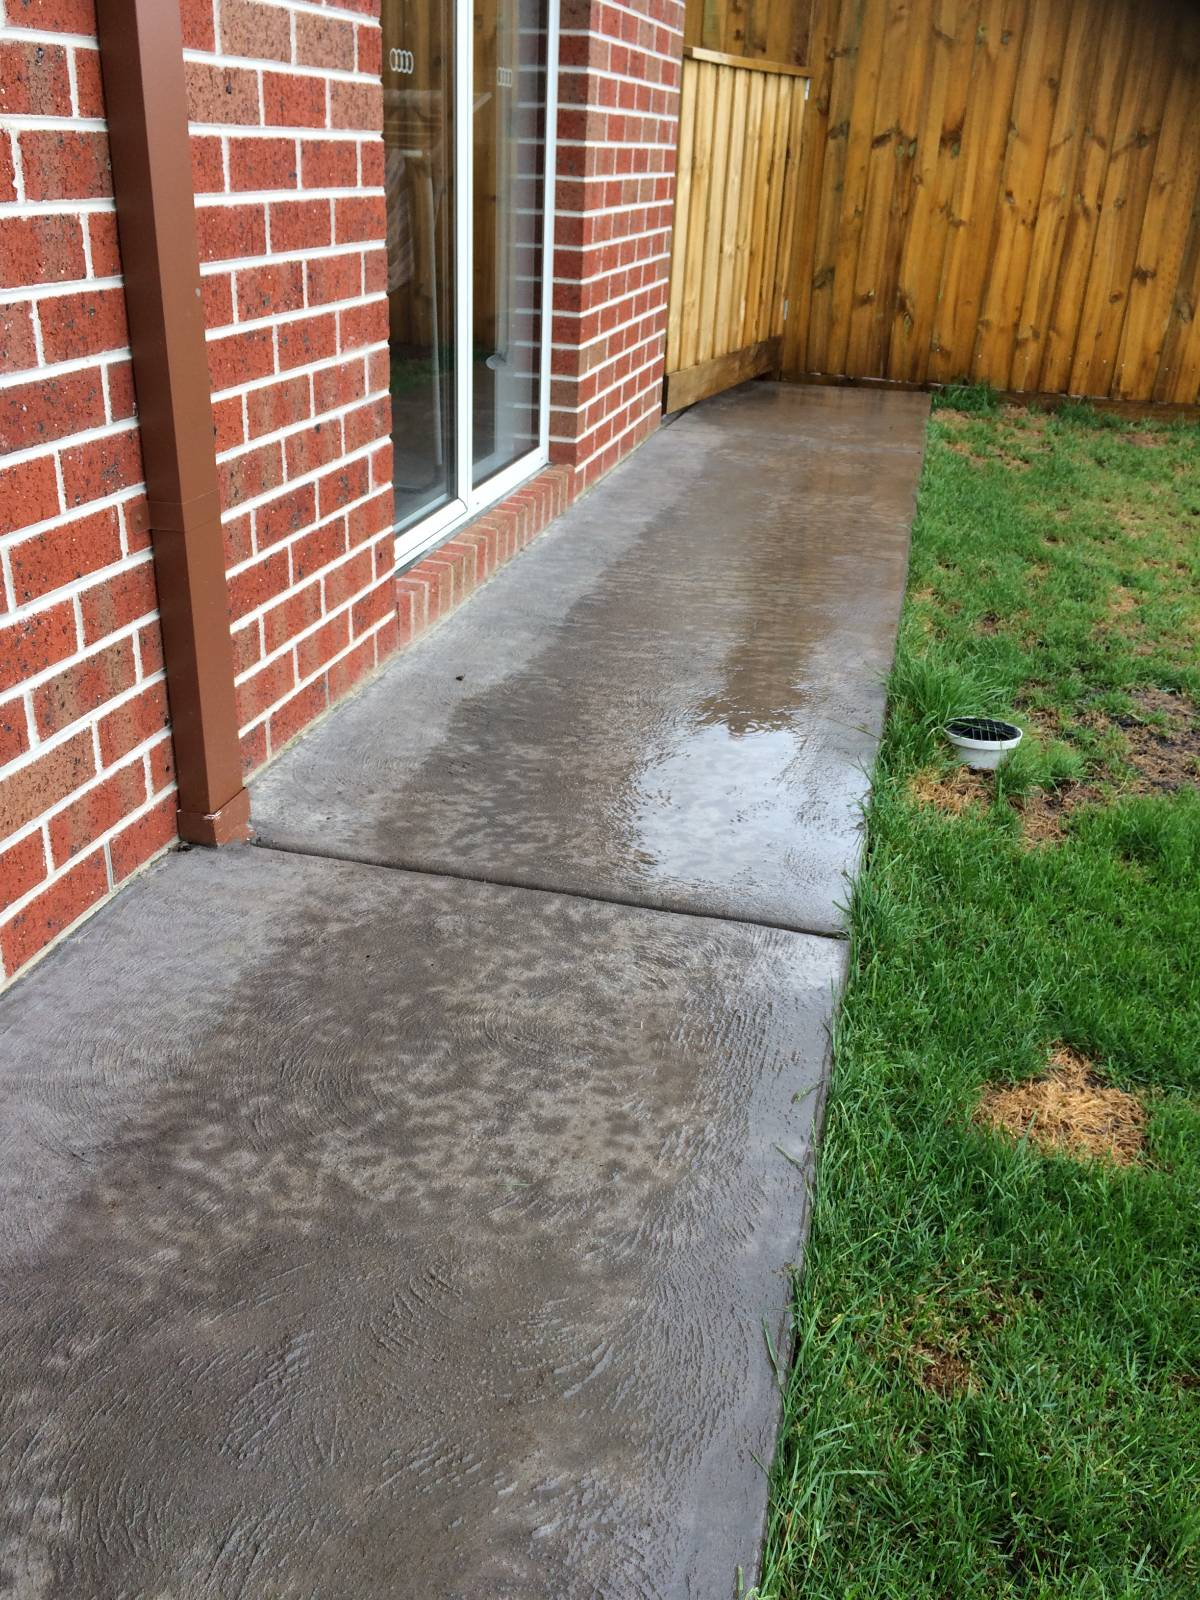 Photos of 50mm fall to concrete apron